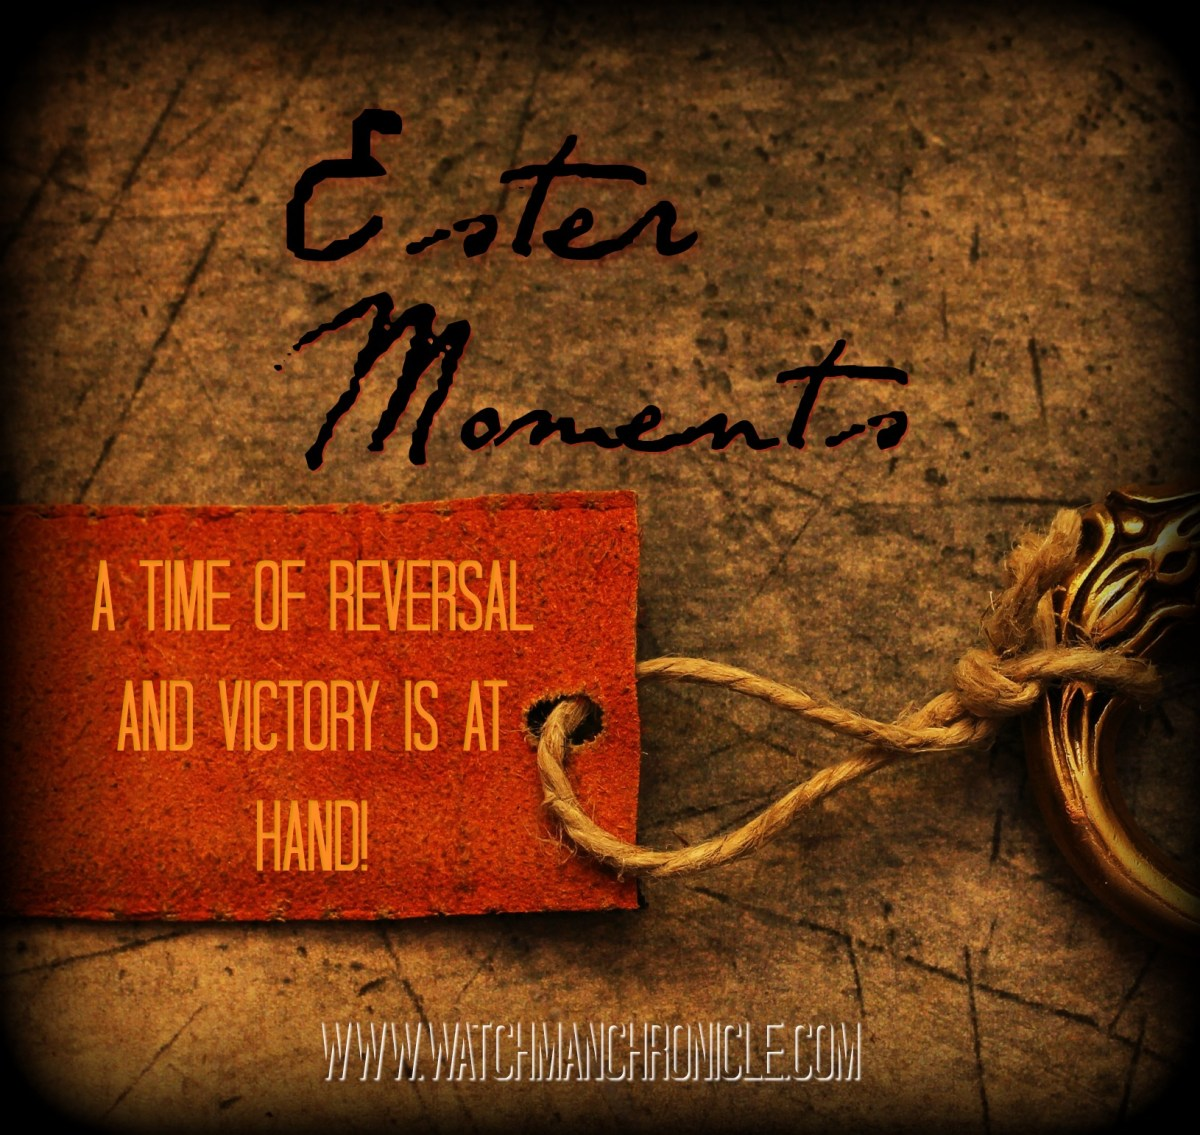 Esther Moments: A Time of Reversal and Victory is at hand.